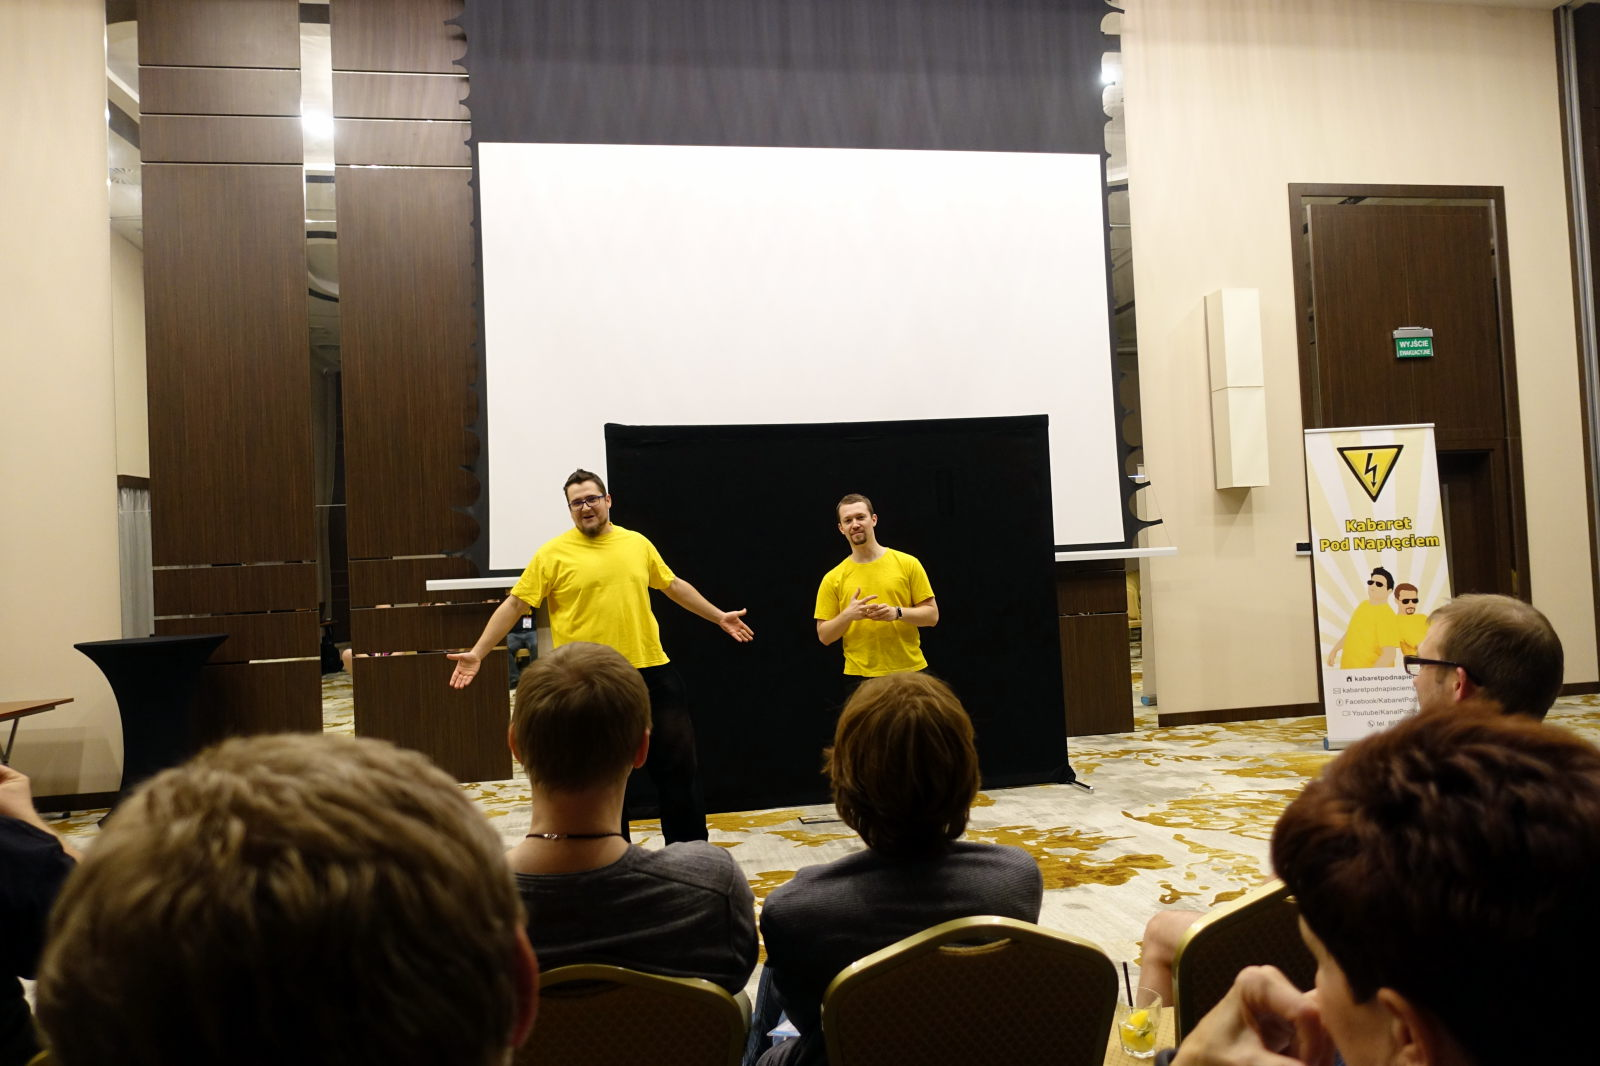 Two men in yellow shirts stand in front of some audience. Only a few heads of the audience members is visible.